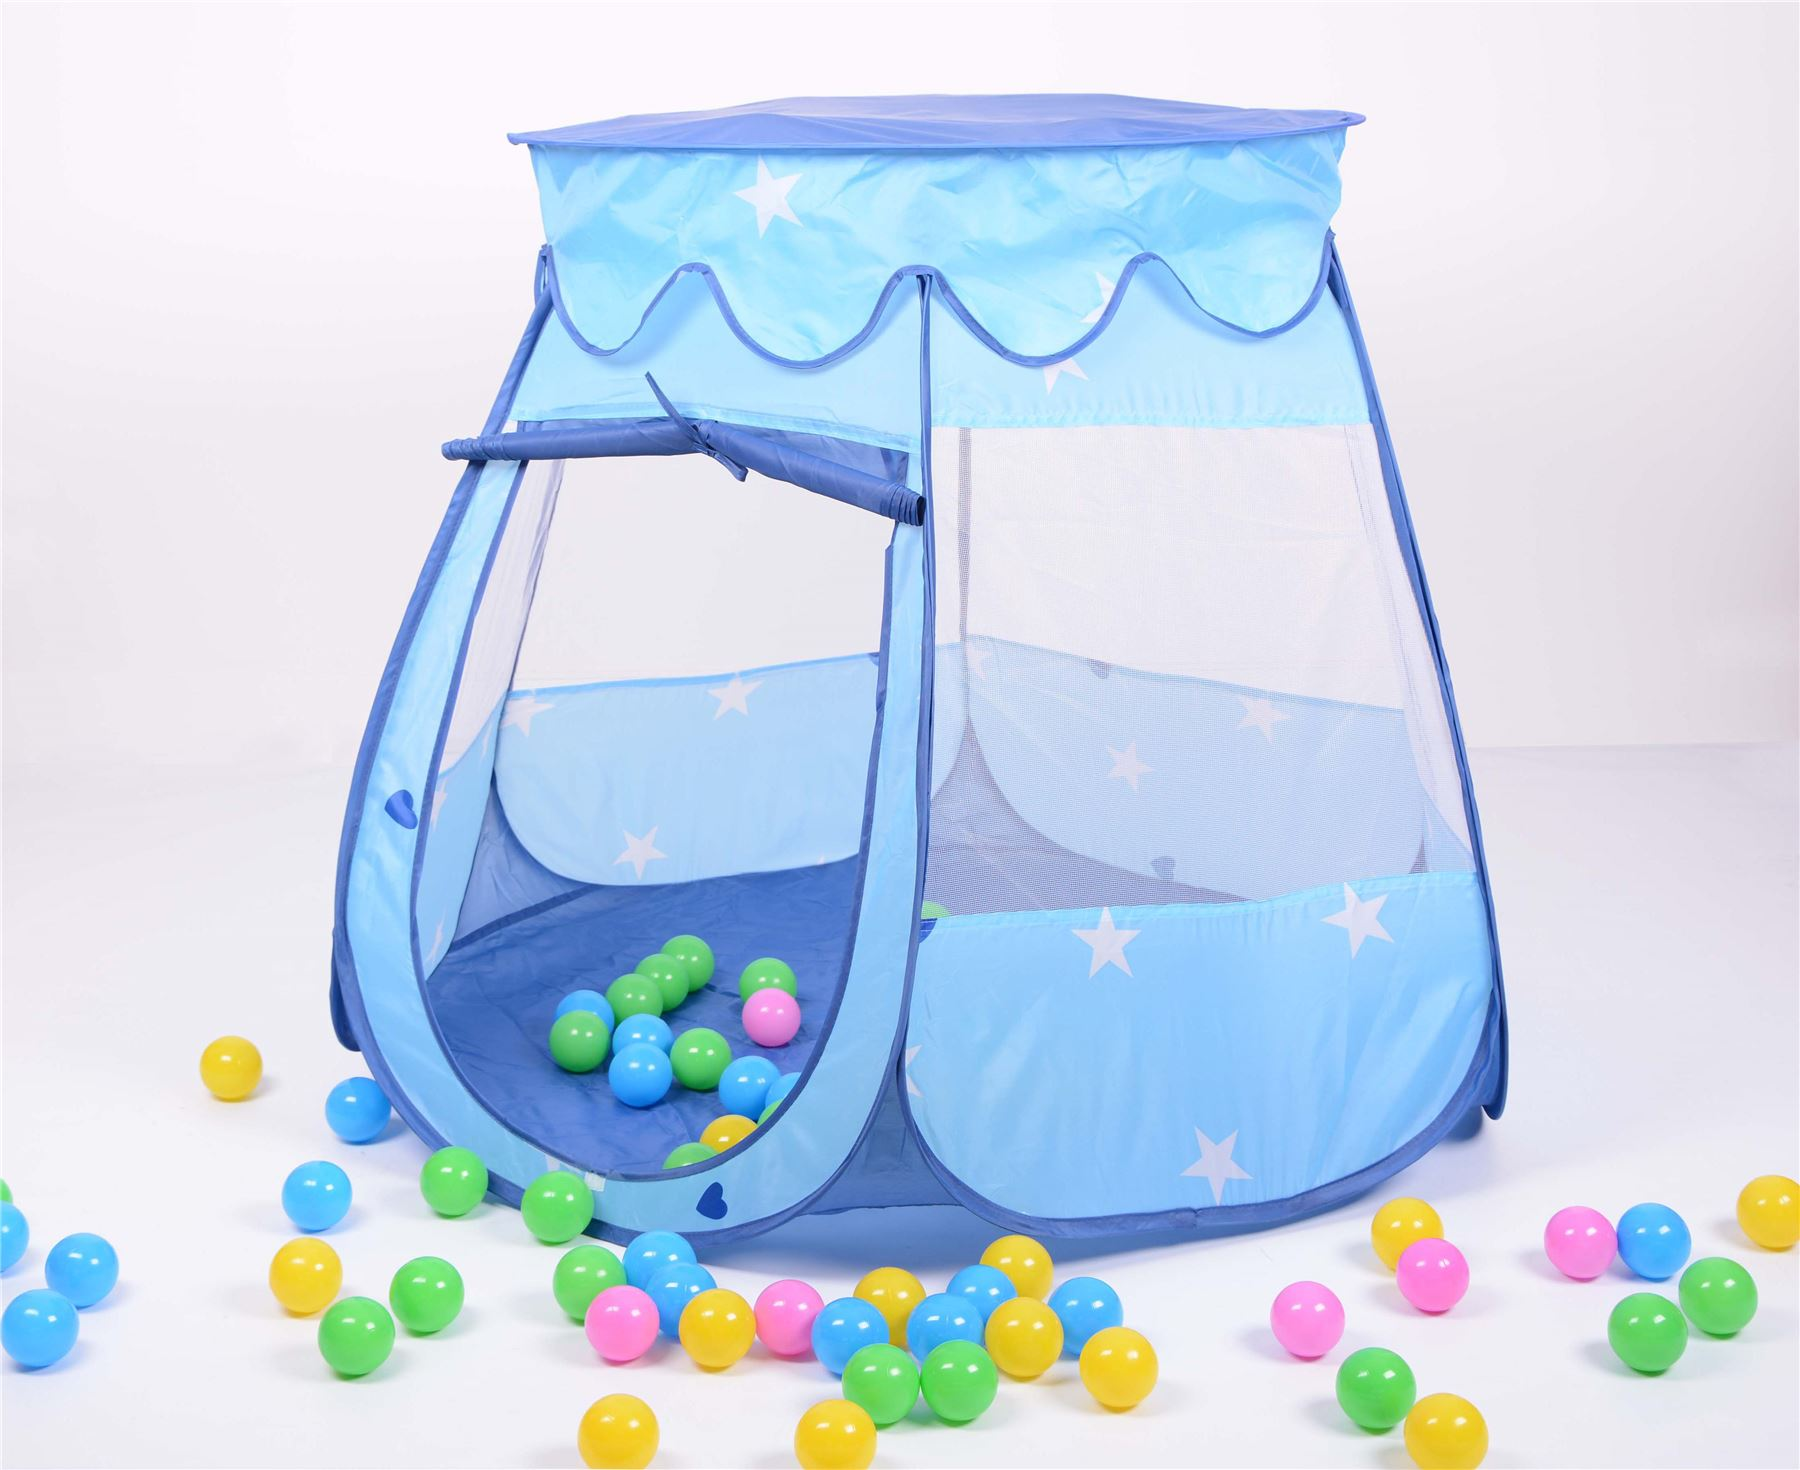 Sentinel Childrens Playhouse Kids Baby Tent Ball Pit Pop Up + 100 Balls + Bag - Blue  sc 1 st  eBay & Childrens Playhouse Kids Baby Tent Ball Pit Pop Up + 100 Balls + Bag ...